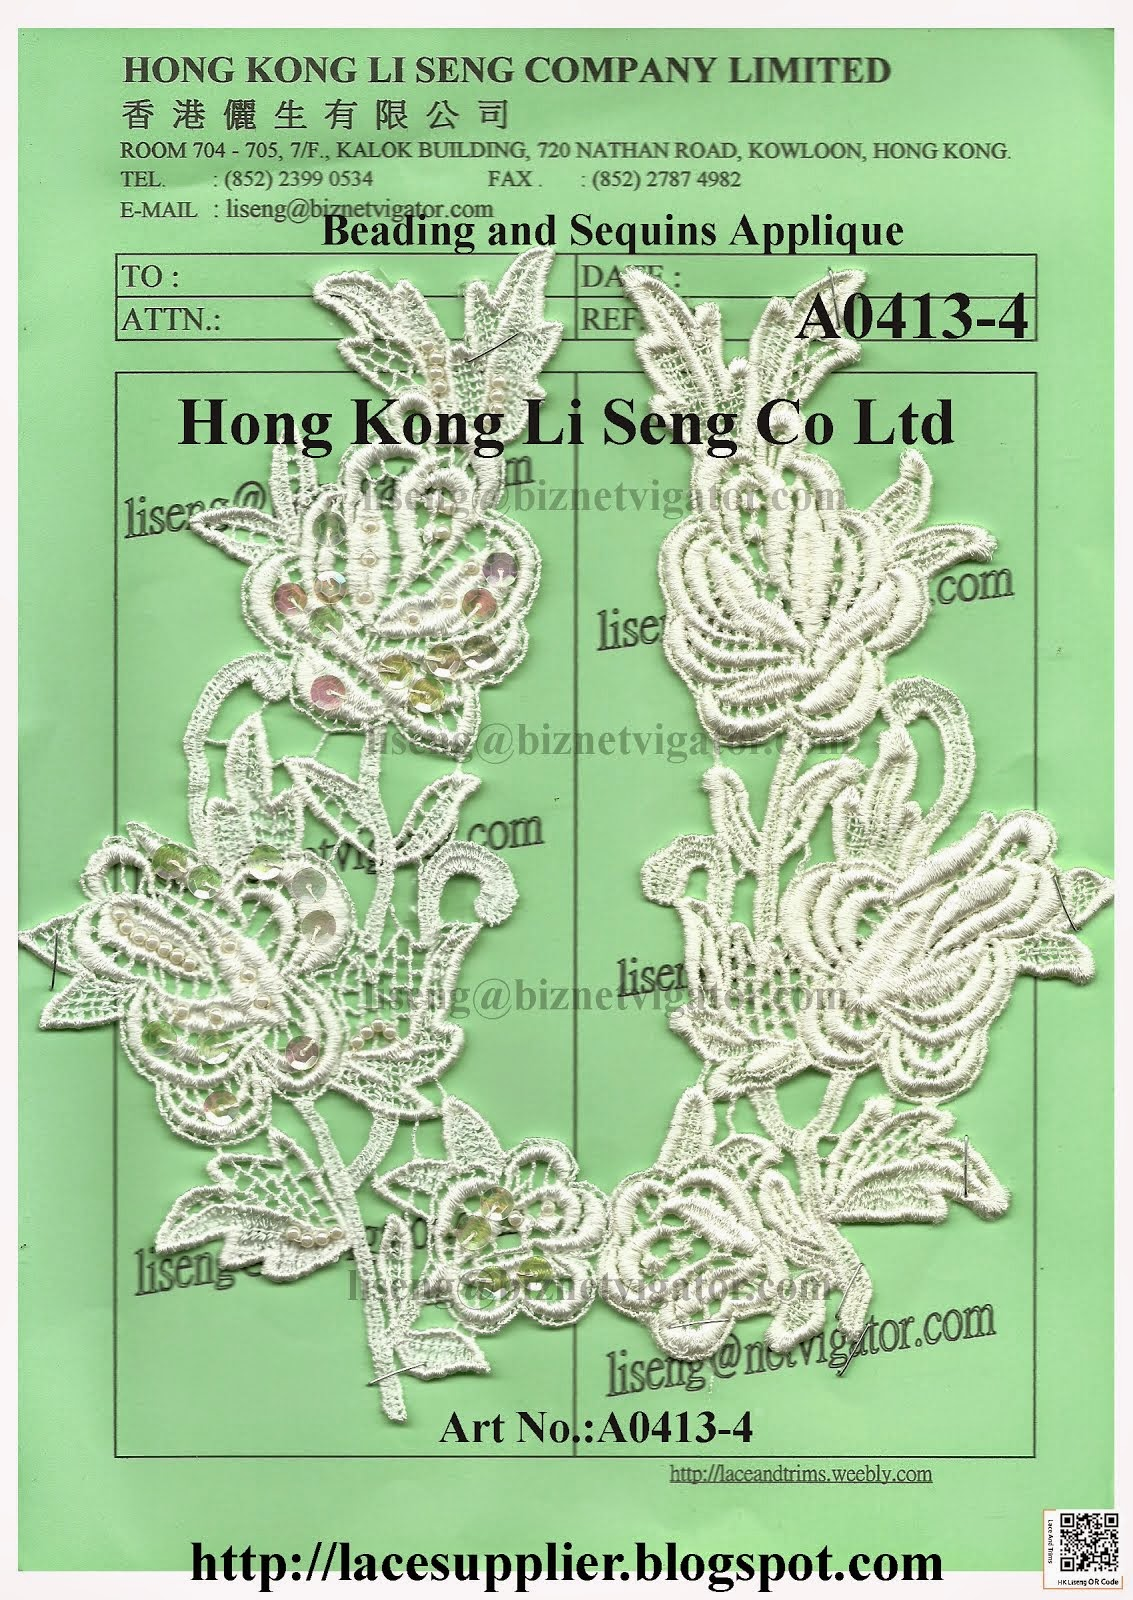 Beading and Sequins Applique Manufacturer Wholesale Supplier - Hong Kong Li Seng Co Ltd